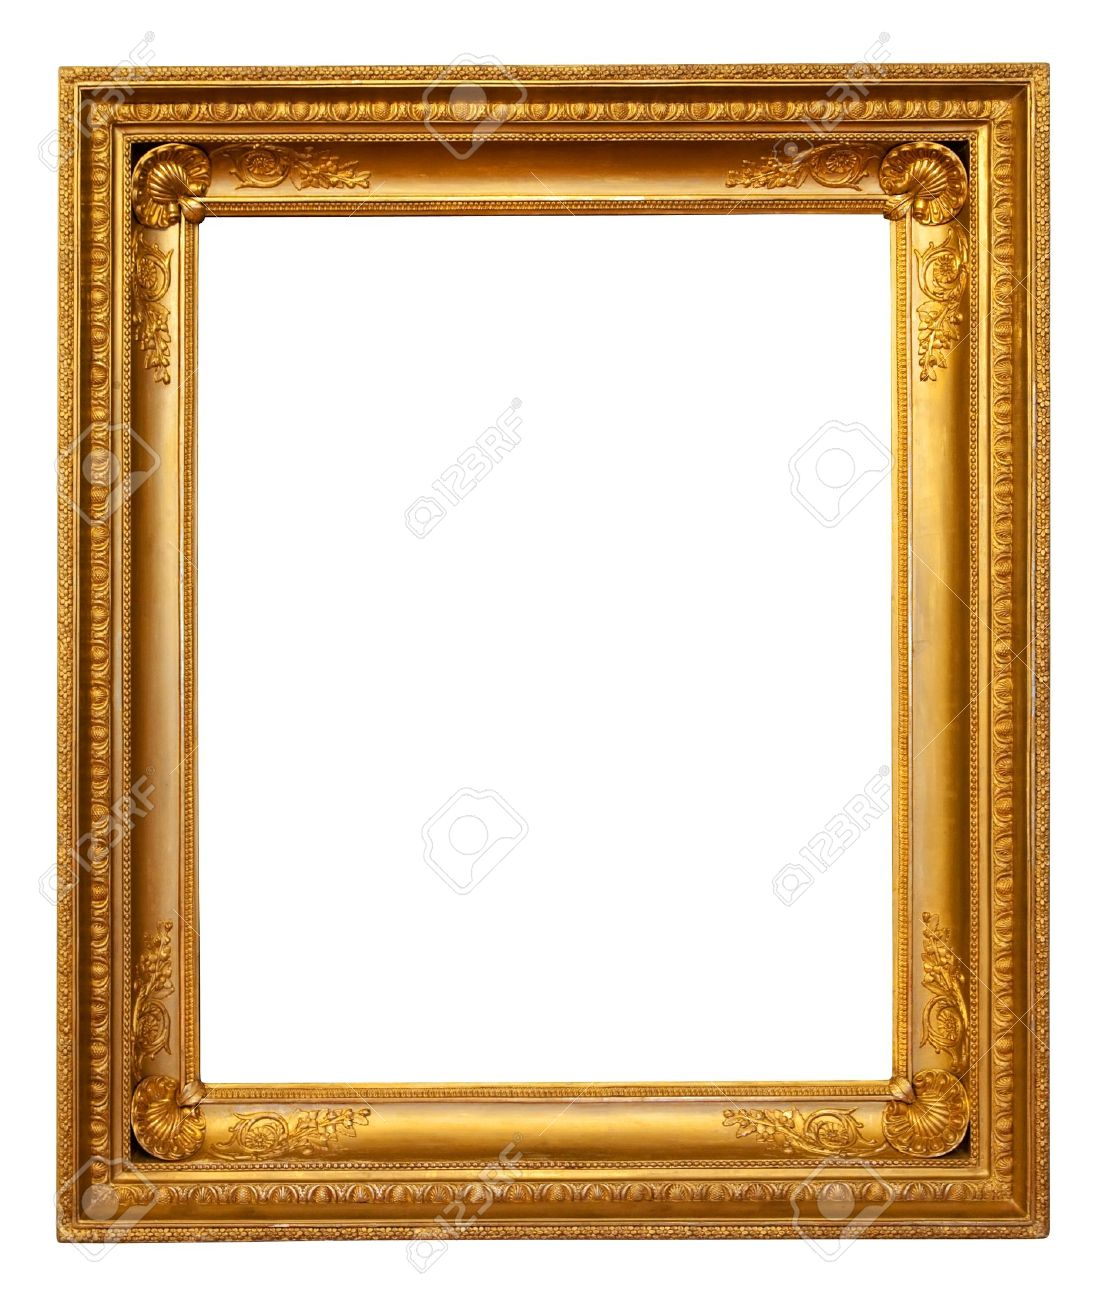 Gold Frame Stock Photo, Picture And Royalty Free Image. Image 8996706.